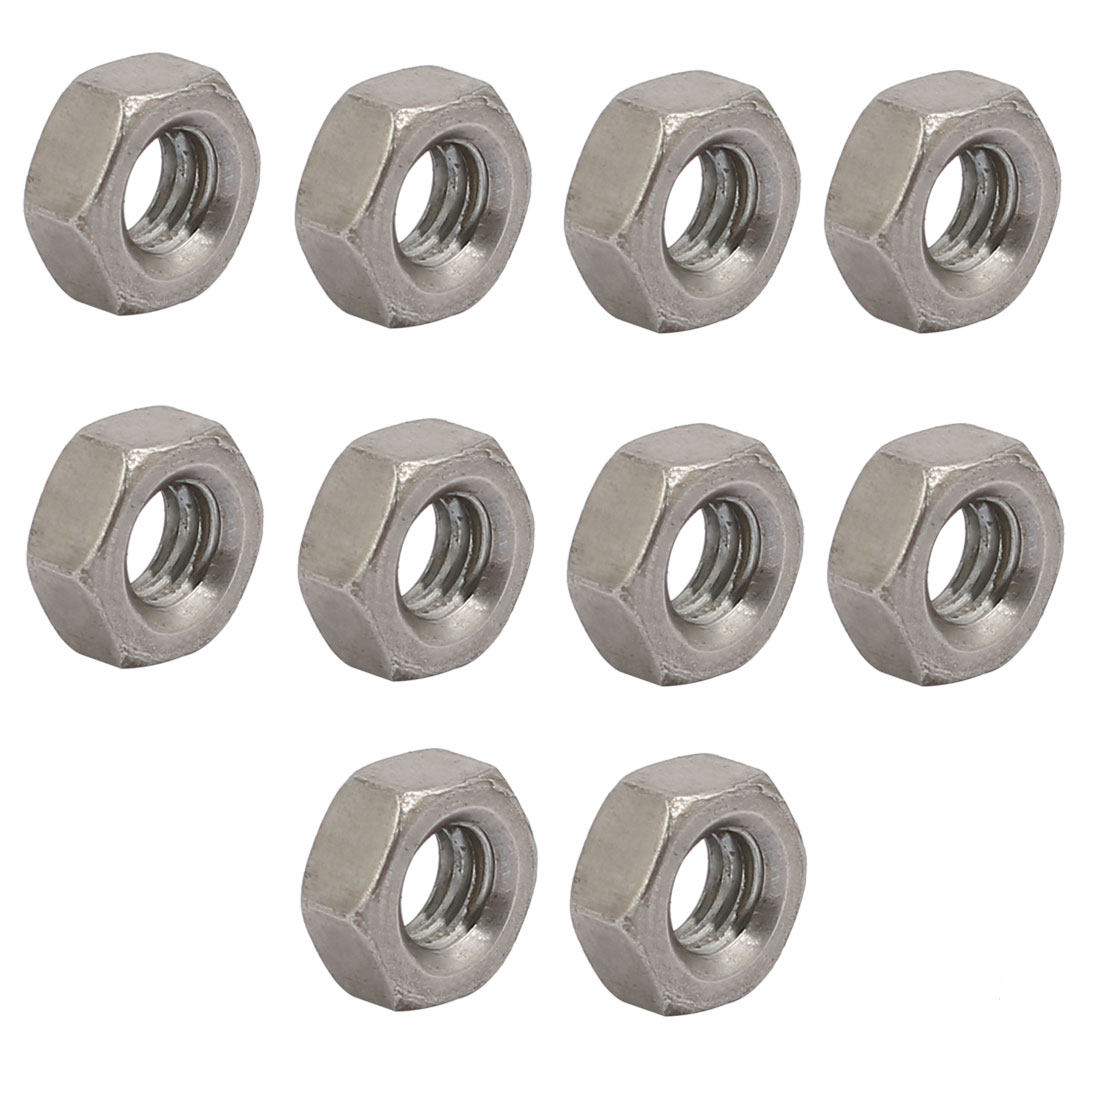 "10pcs 5/32""-32 BSW Thread 304 Stainless Steel Hex Nut Fastener Silver Tone"